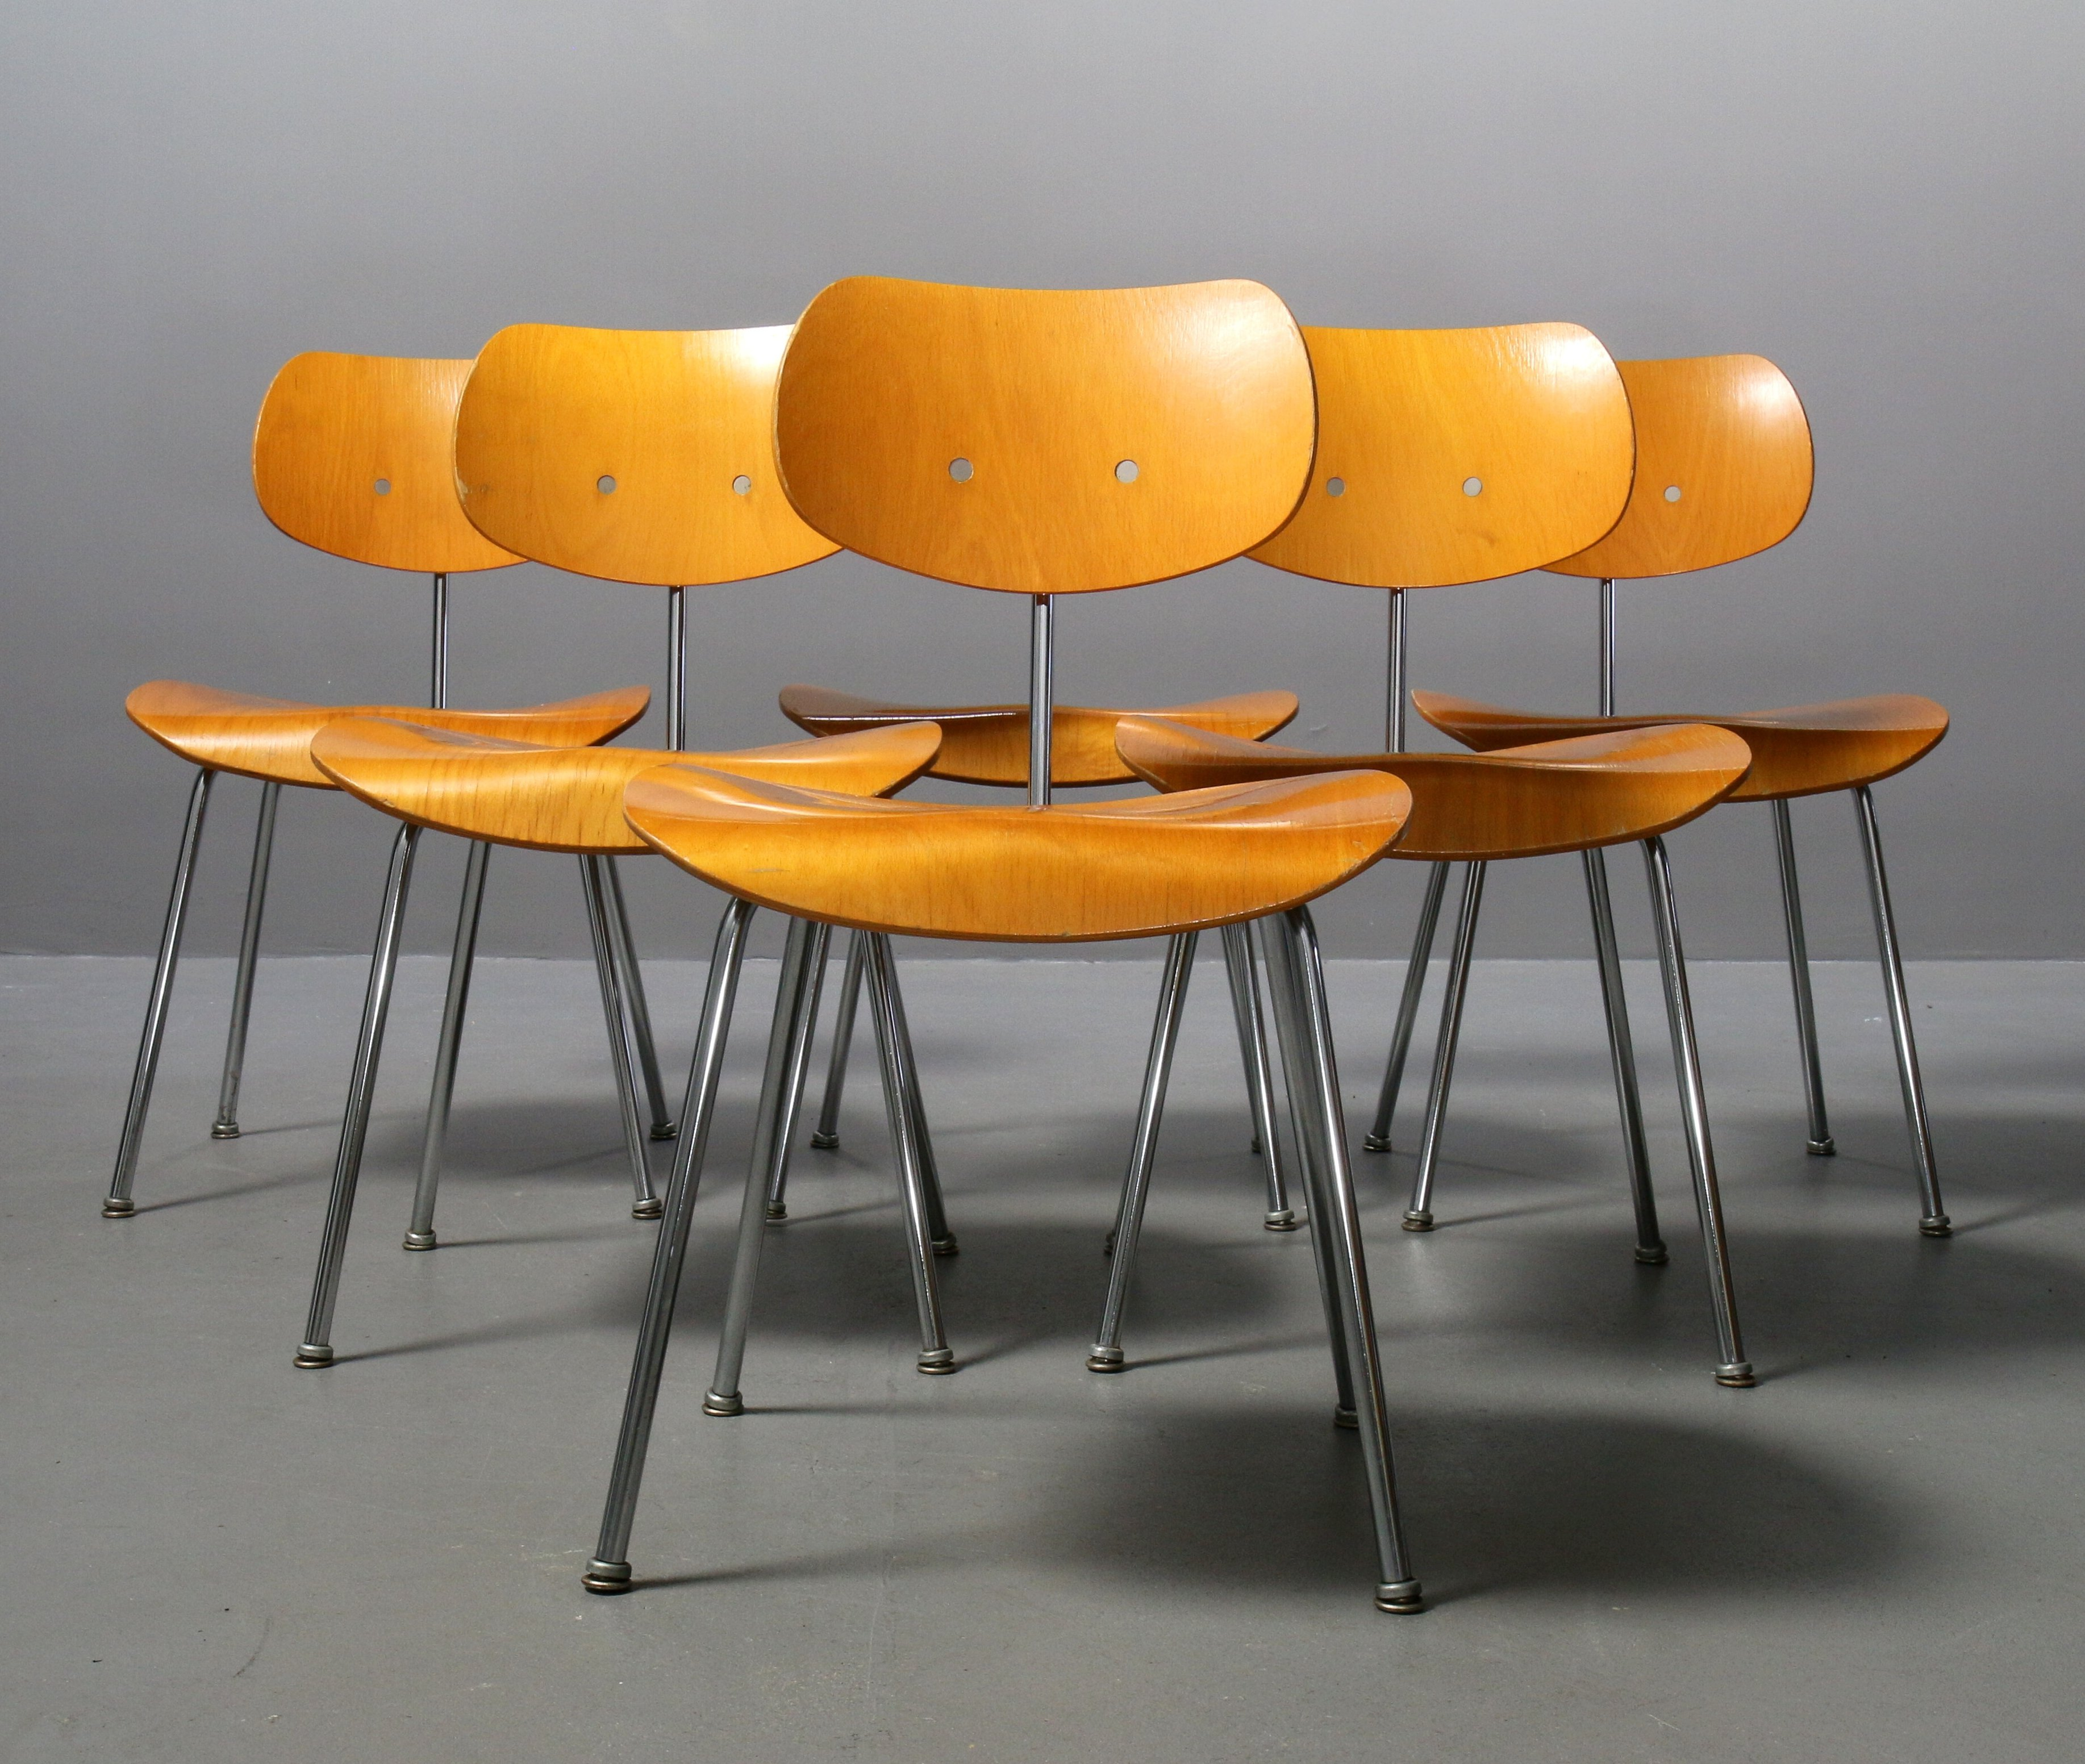 6 x SE 68 dining chair by Egon Eiermann for Wilde und ...